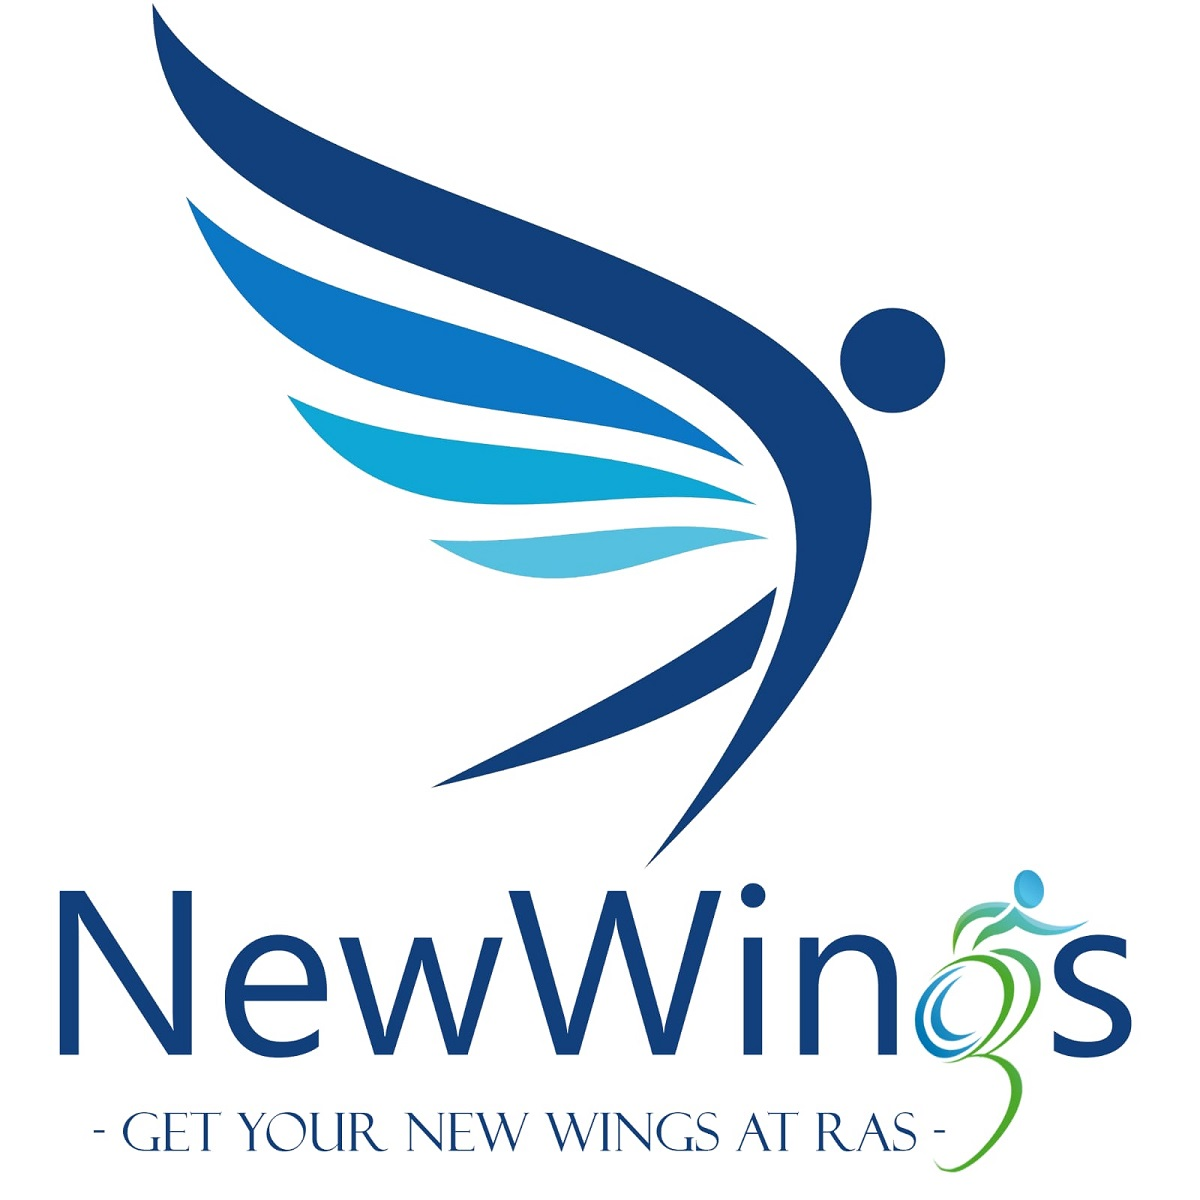 logo NewWings. Get your new wings at ras